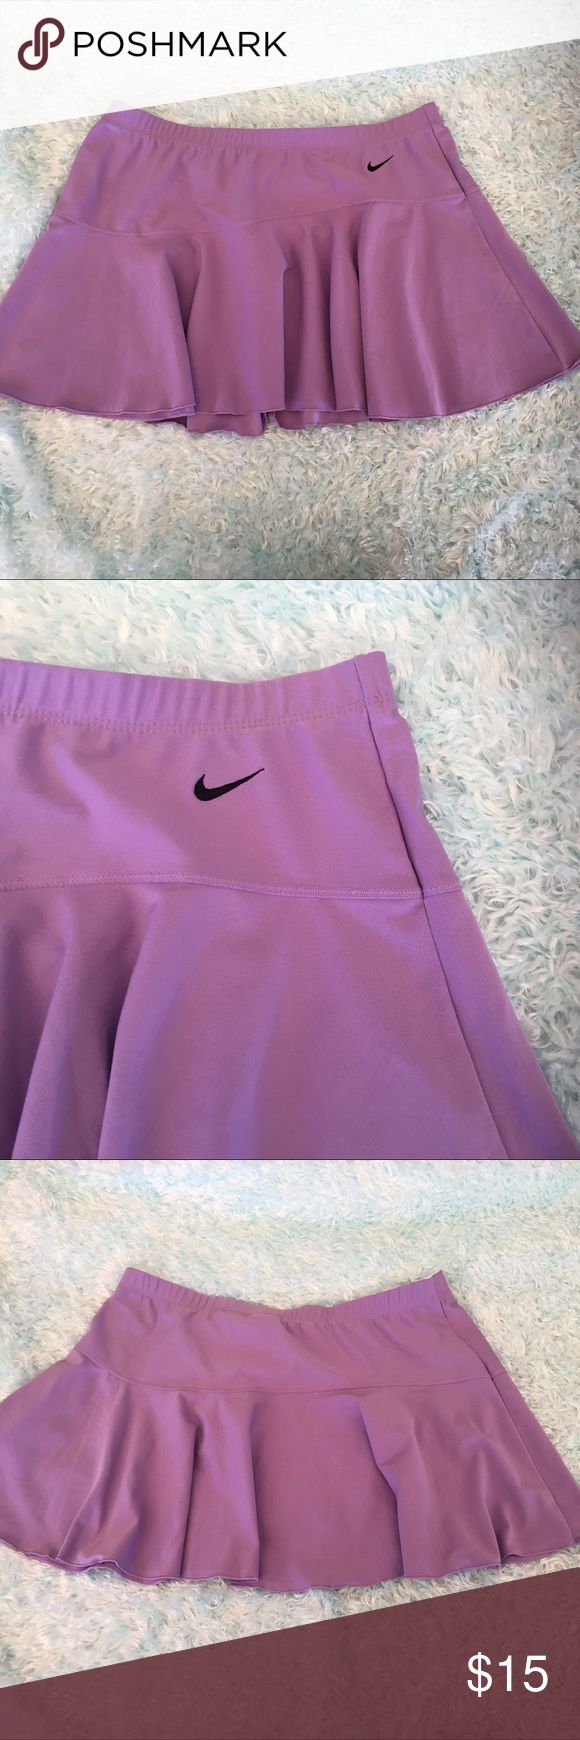 Nike dri fit tennis skirt Cute tennis skirt great for playing tennis. Nike Skirts